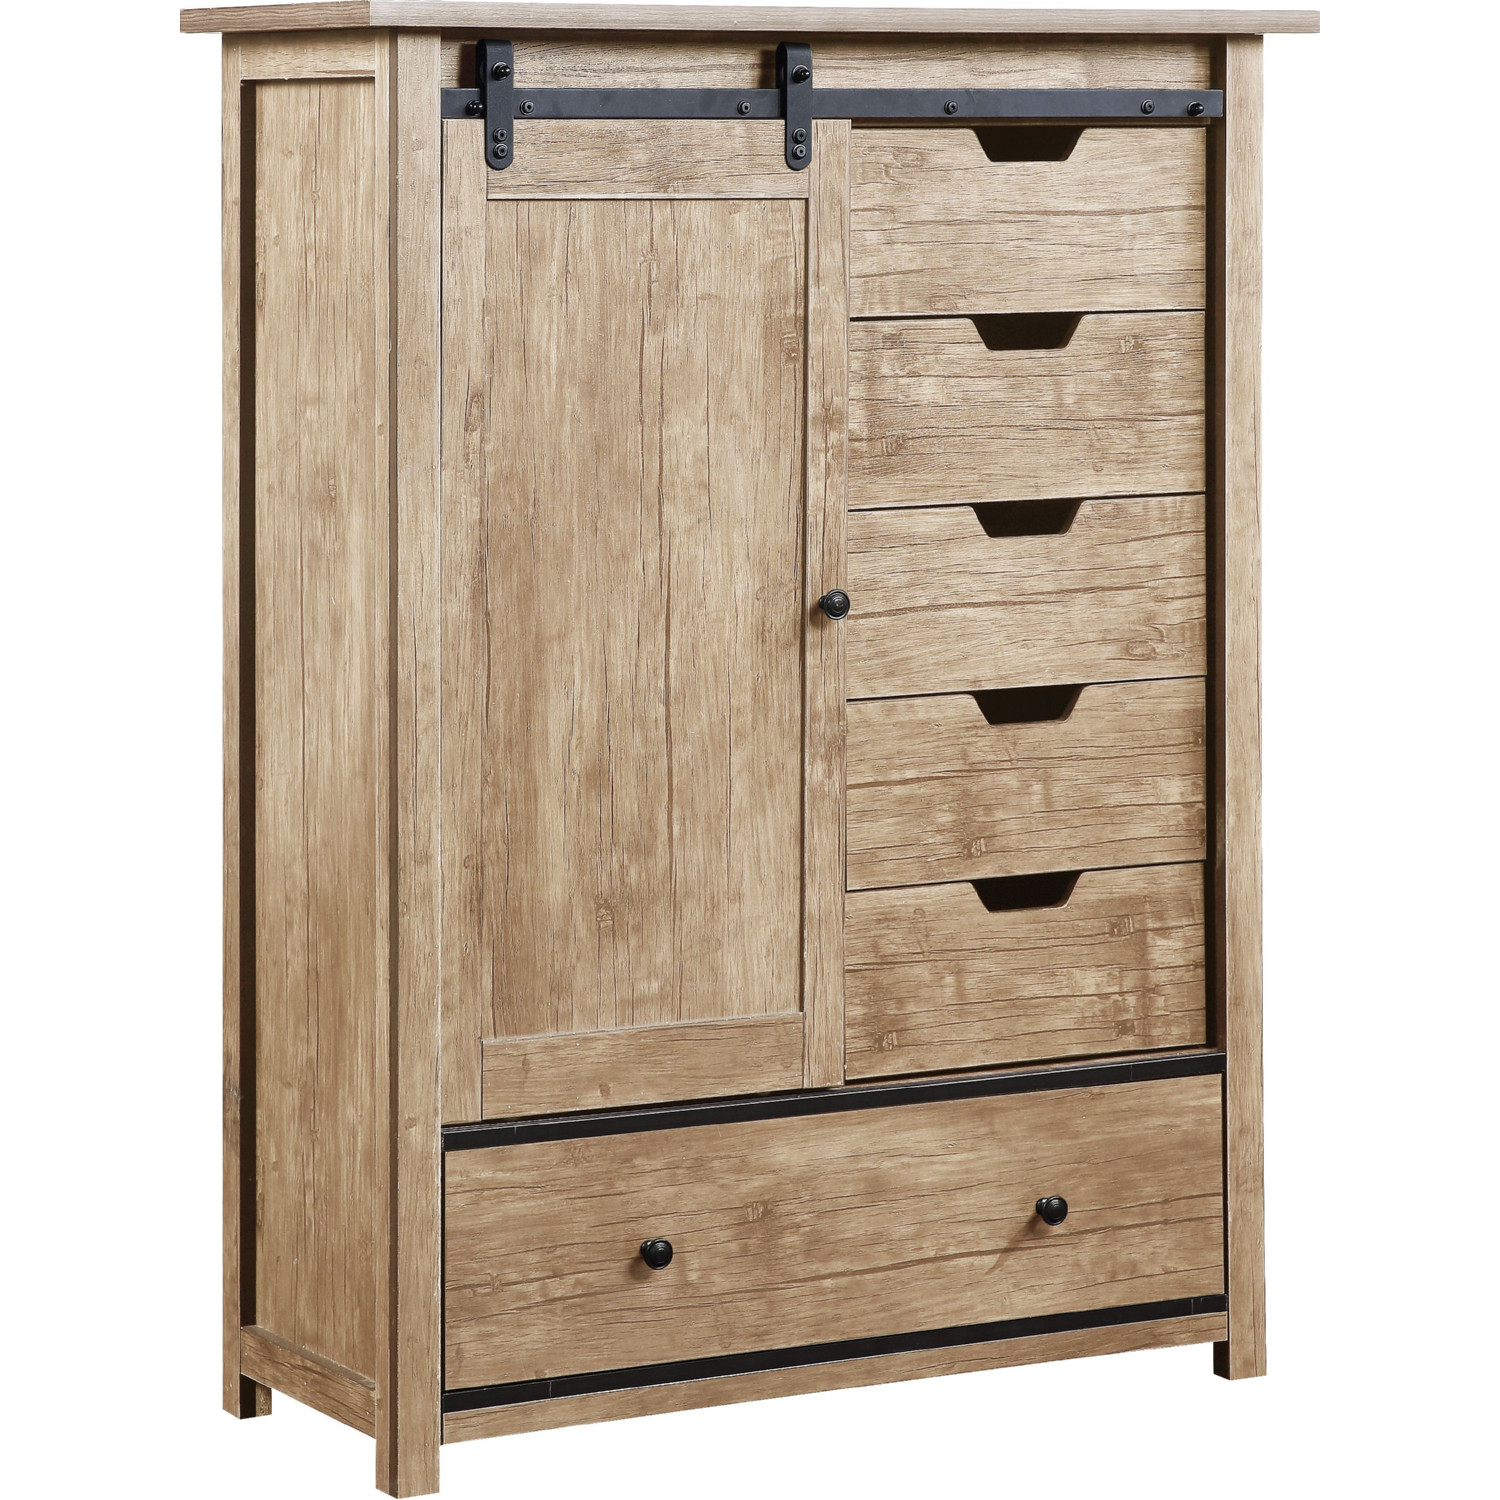 Acme 97466 Cedric Armoire W Sliding Barn Door In Natural Finish Wood